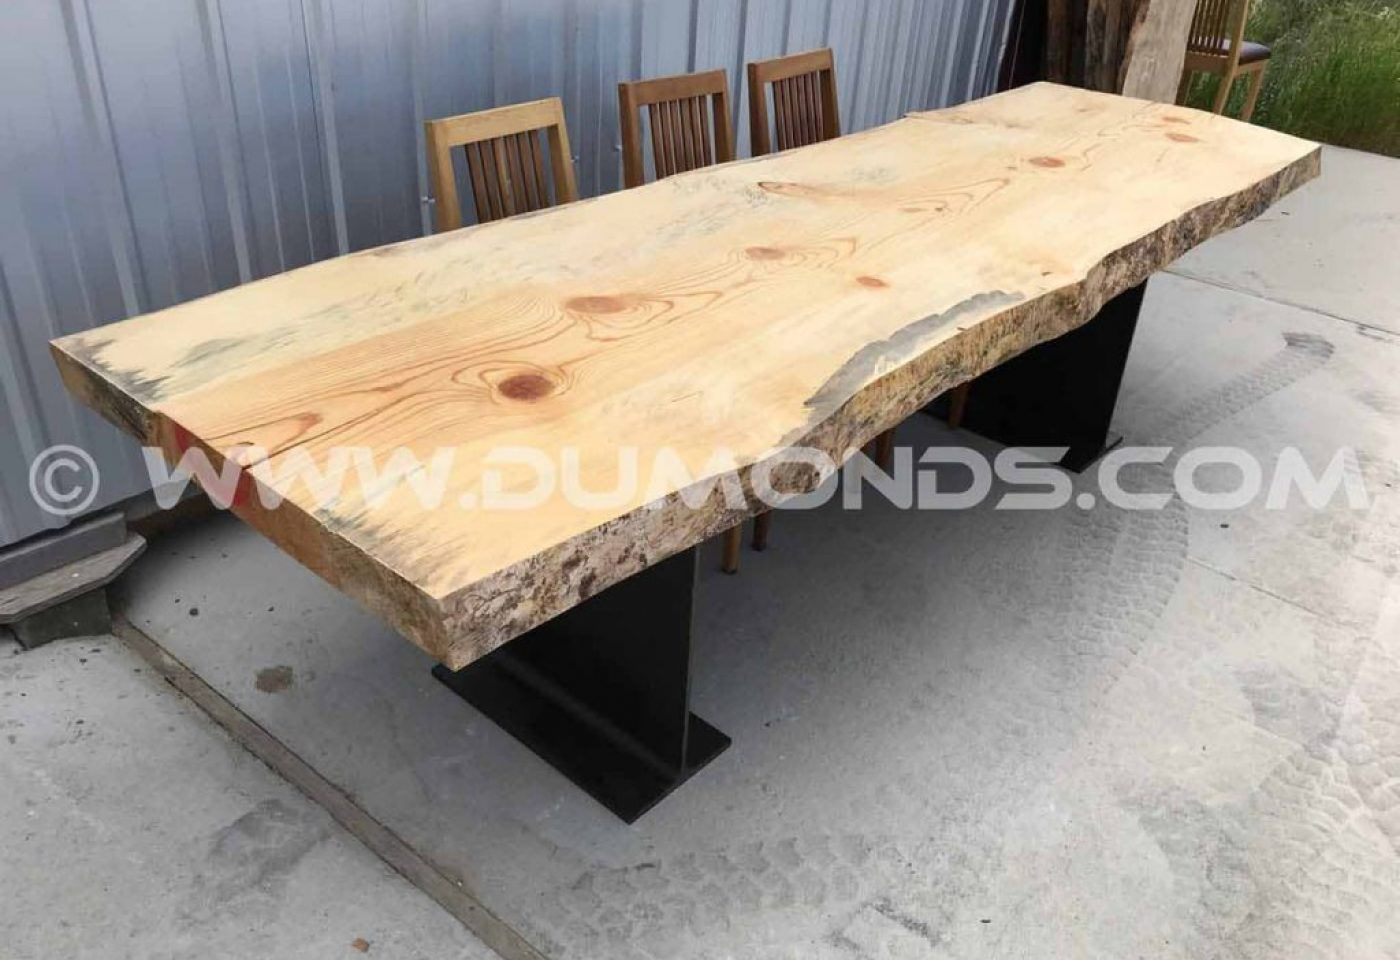 AIR DRIED KNOTTY PINE LIVE EDGE TABLE